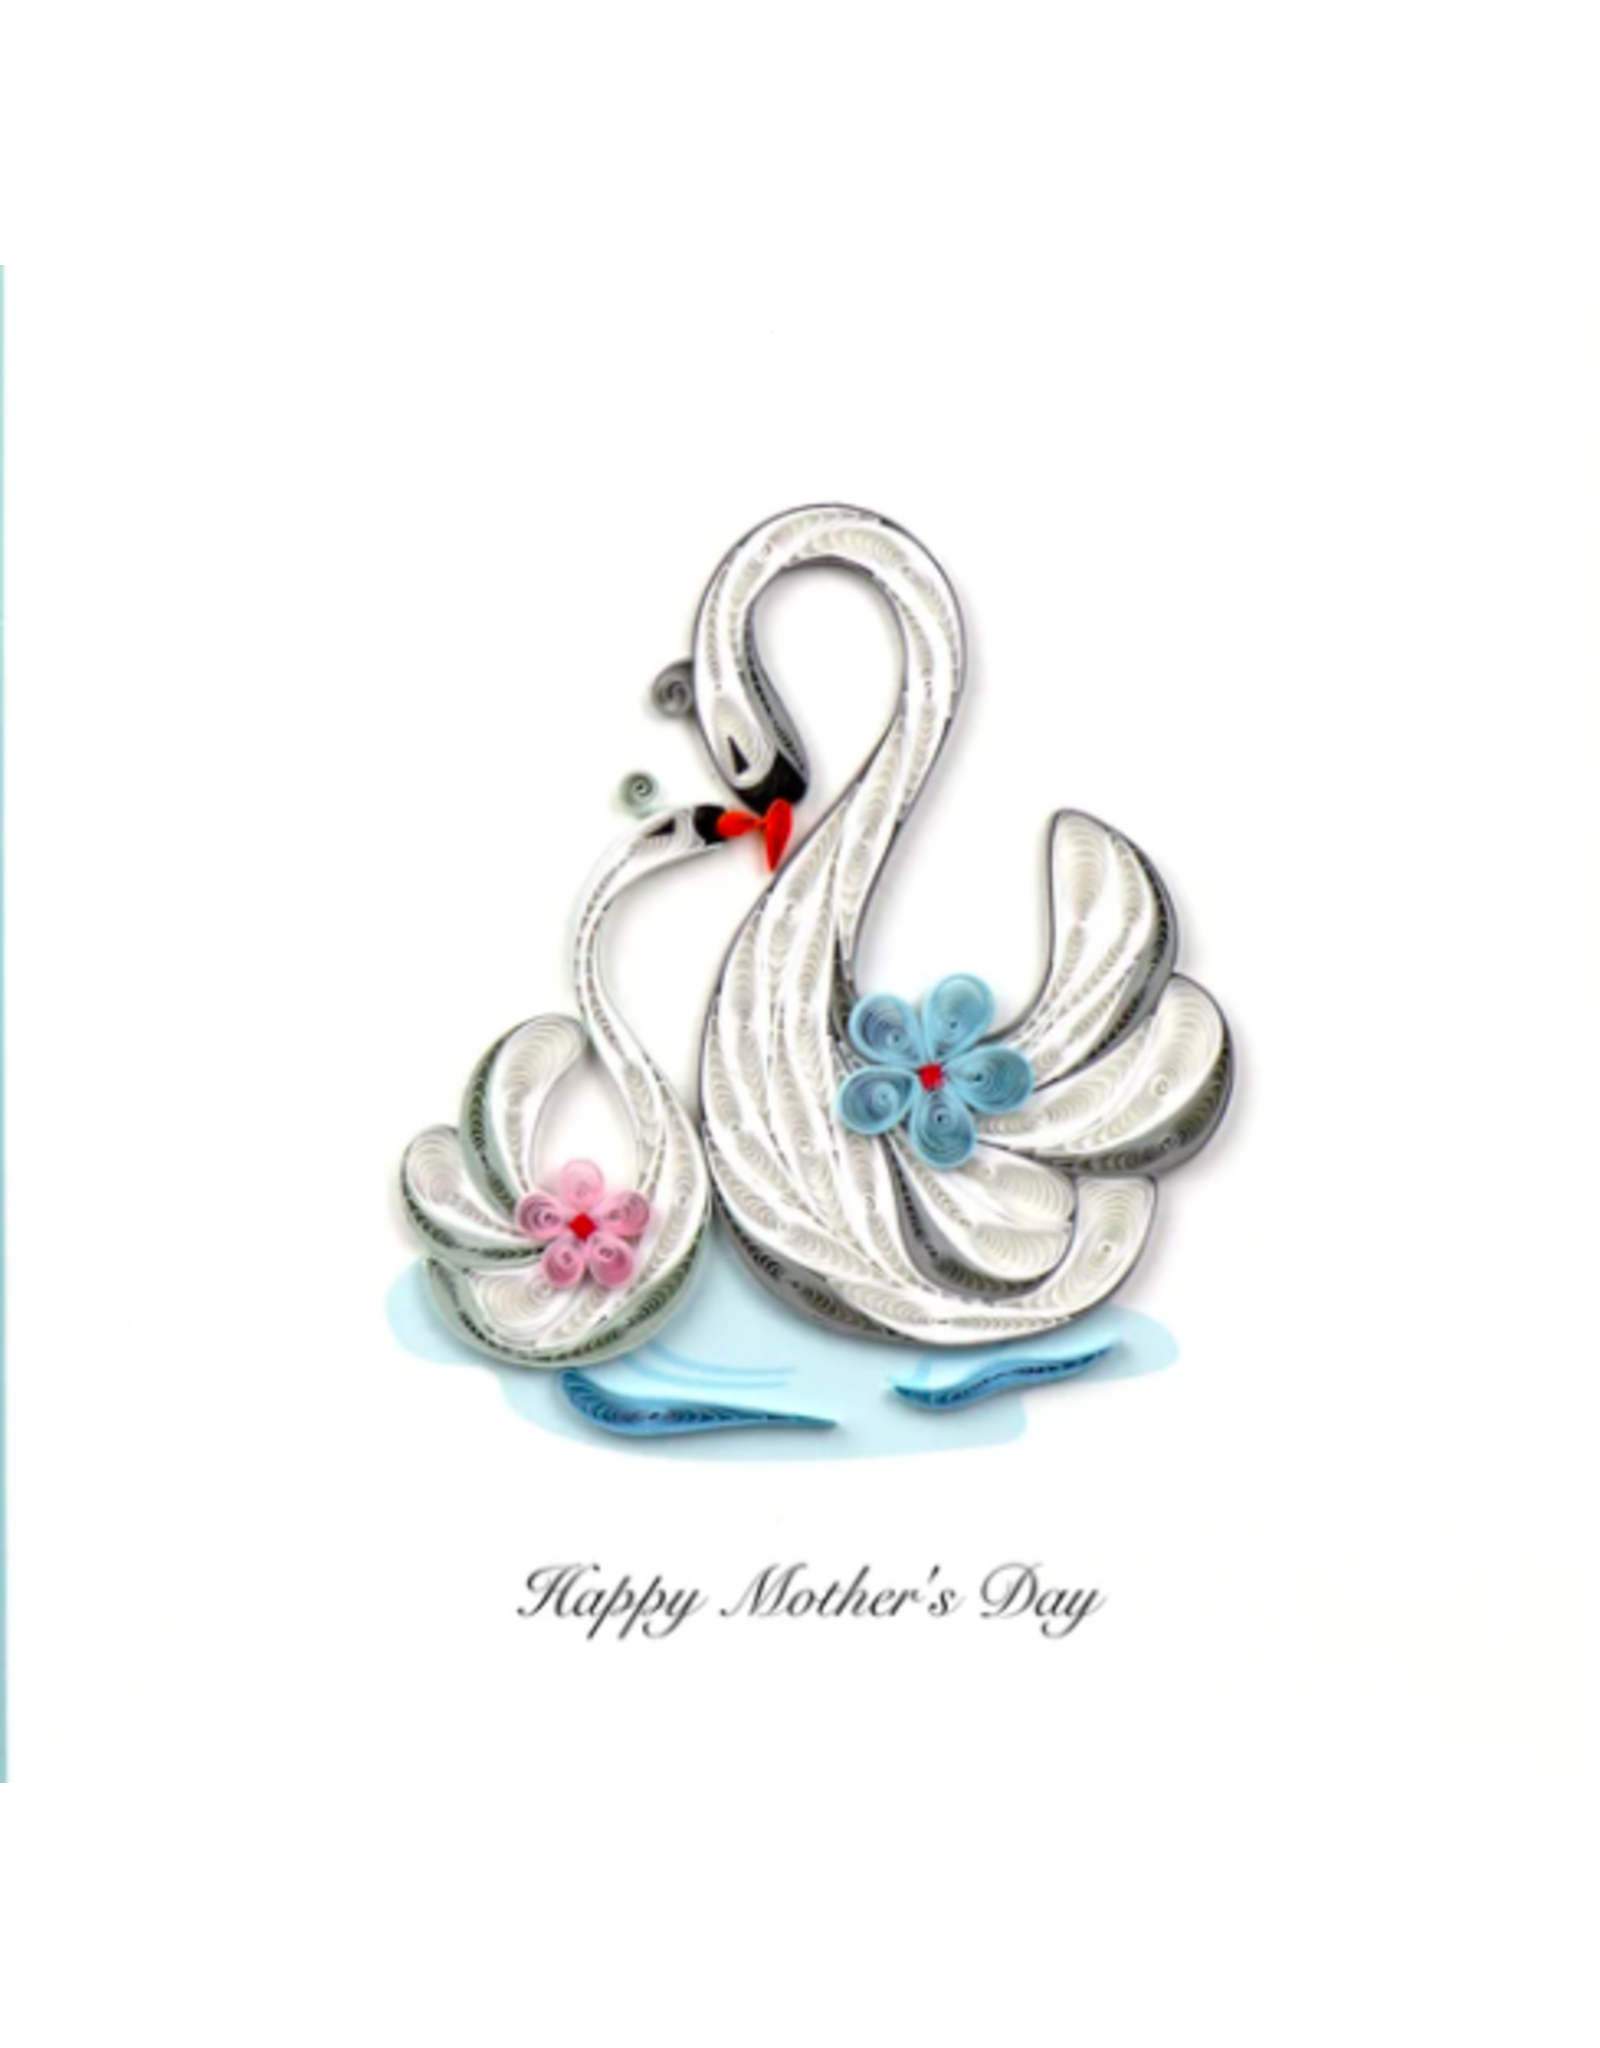 Happy Mother's Day Swan